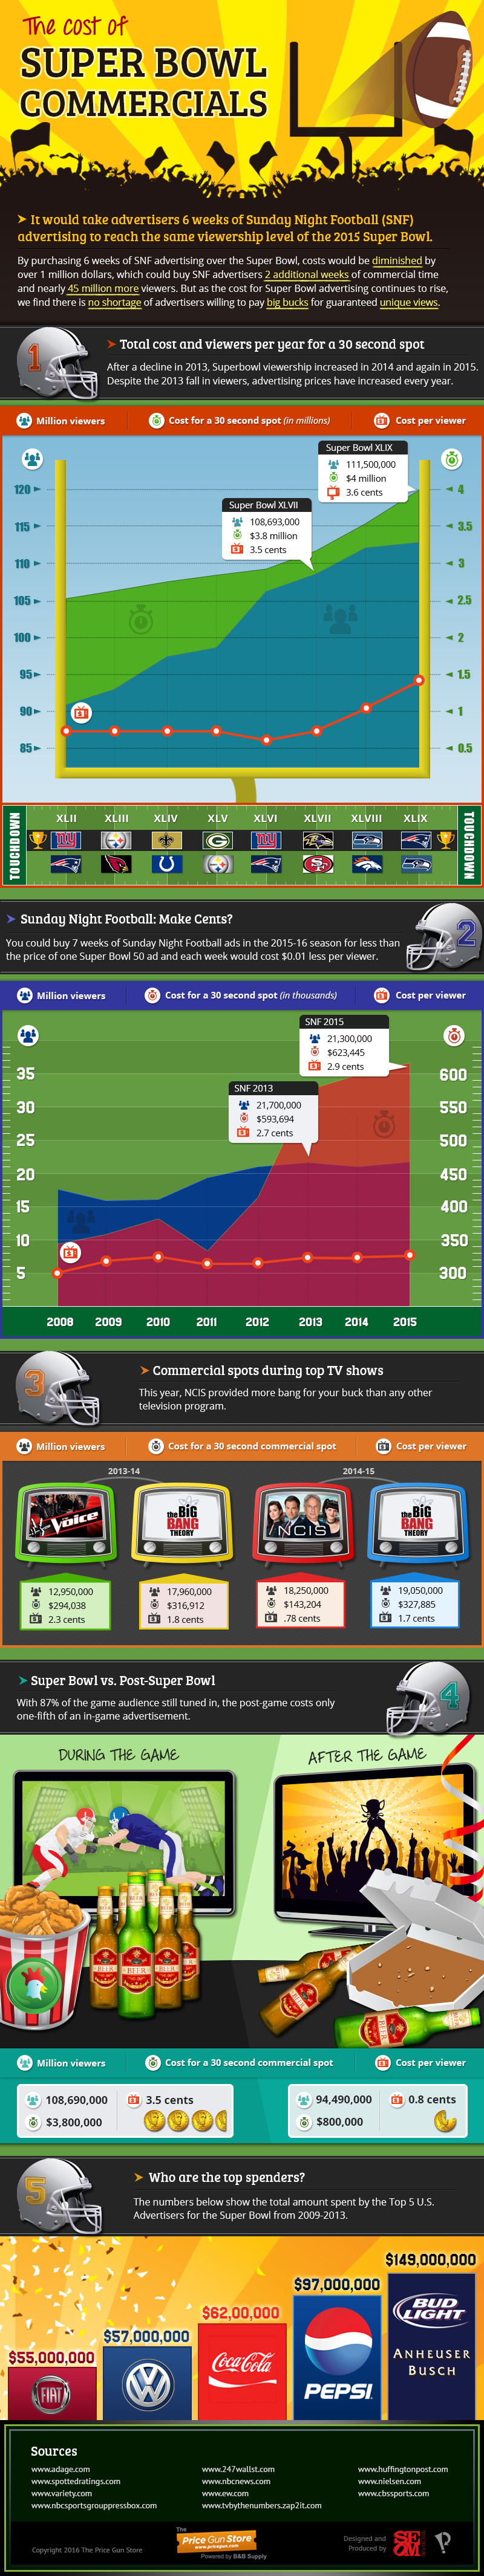 cost-of-super-bowl-ads-infographic.jpg